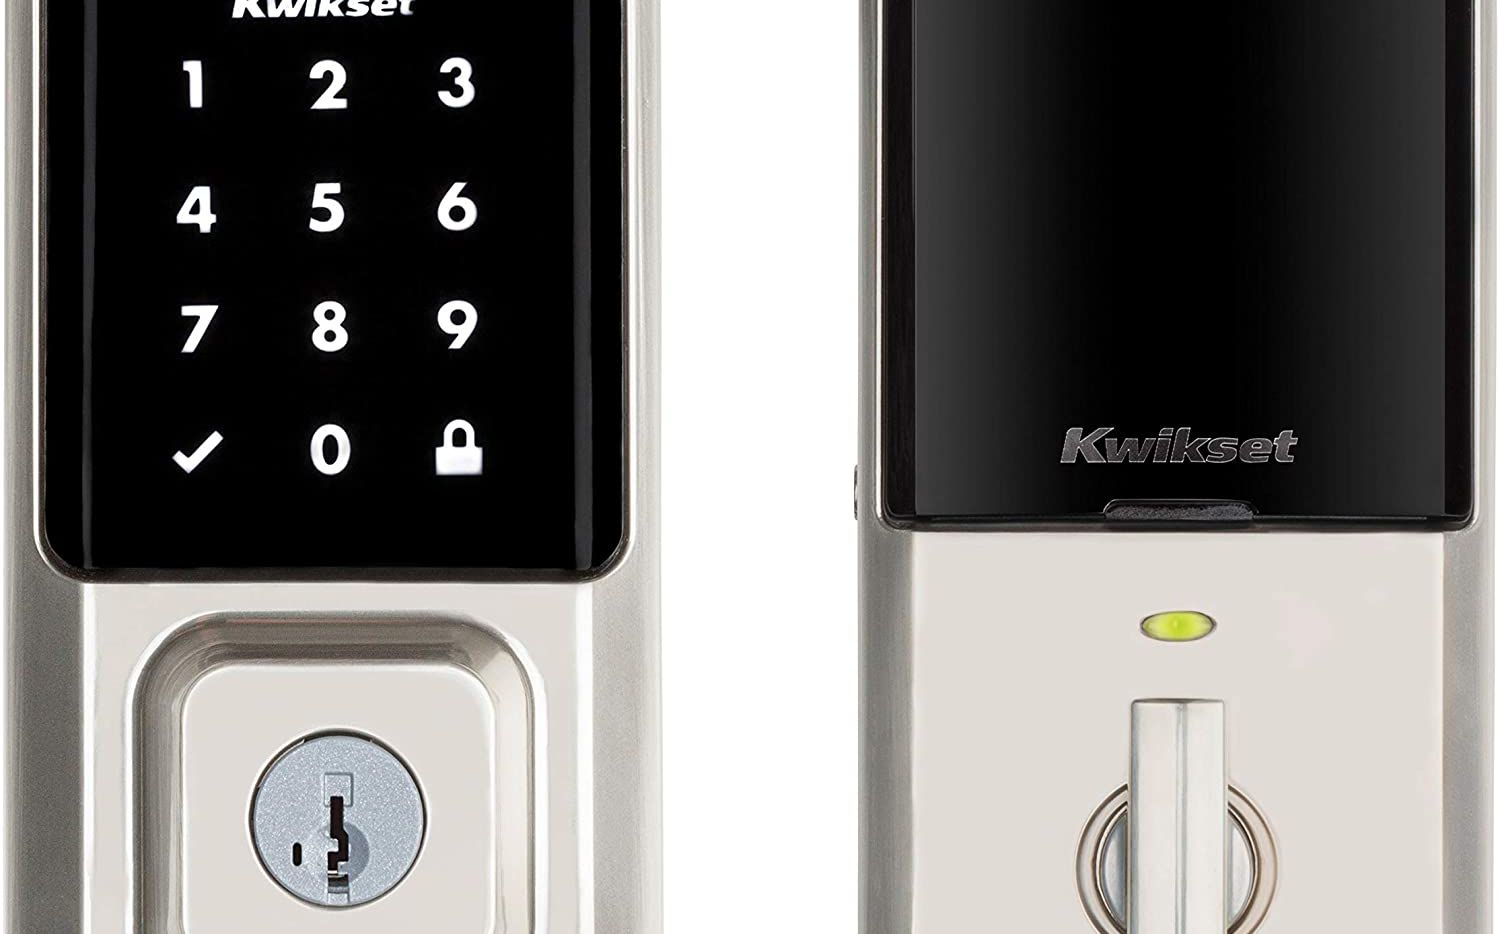 The Kwikset Halo Wi-Fi Smart Lock